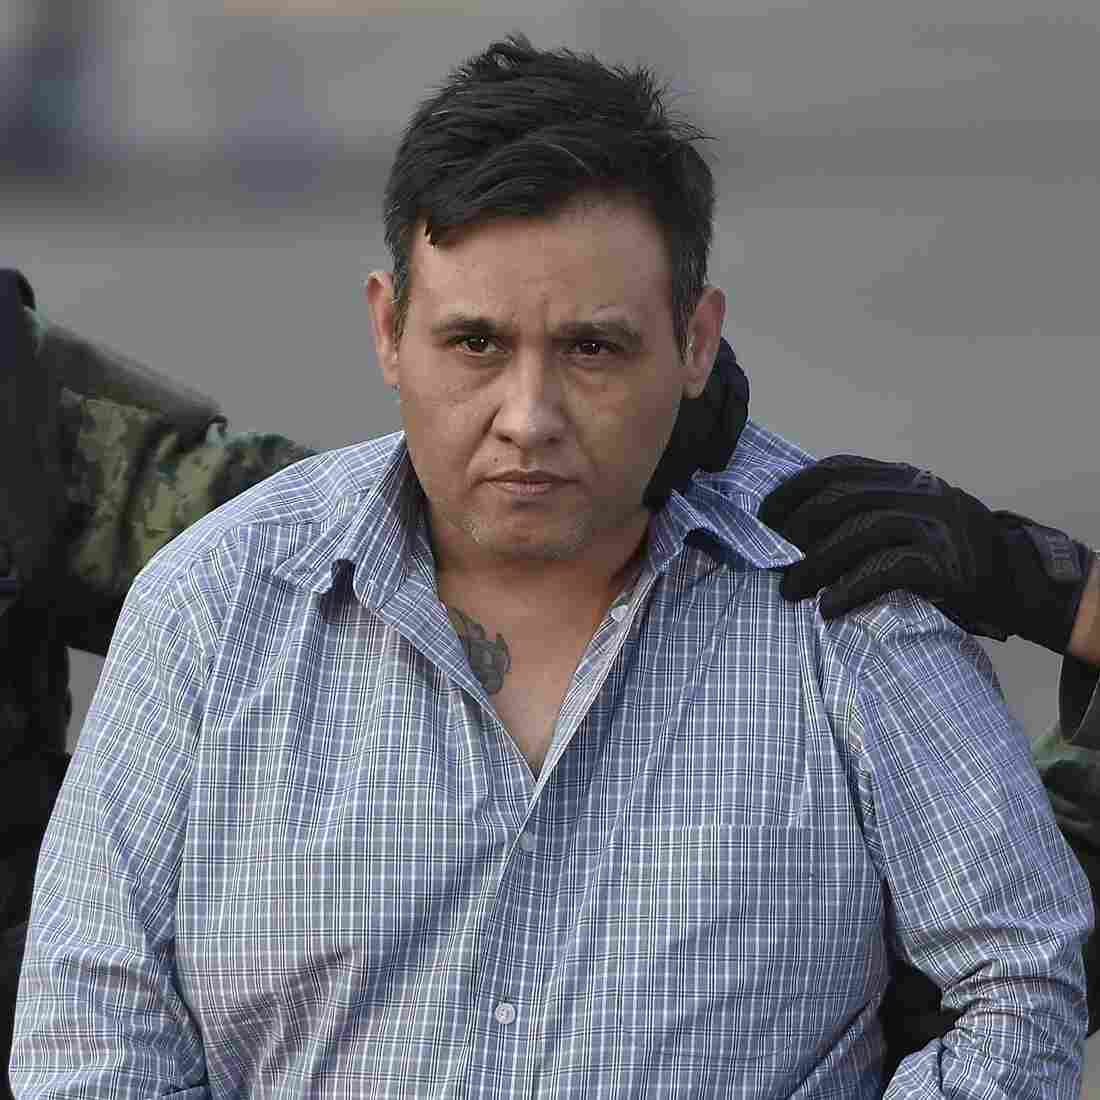 Mexico Takes Out Cartel Heads, But Crime Continues To Climb